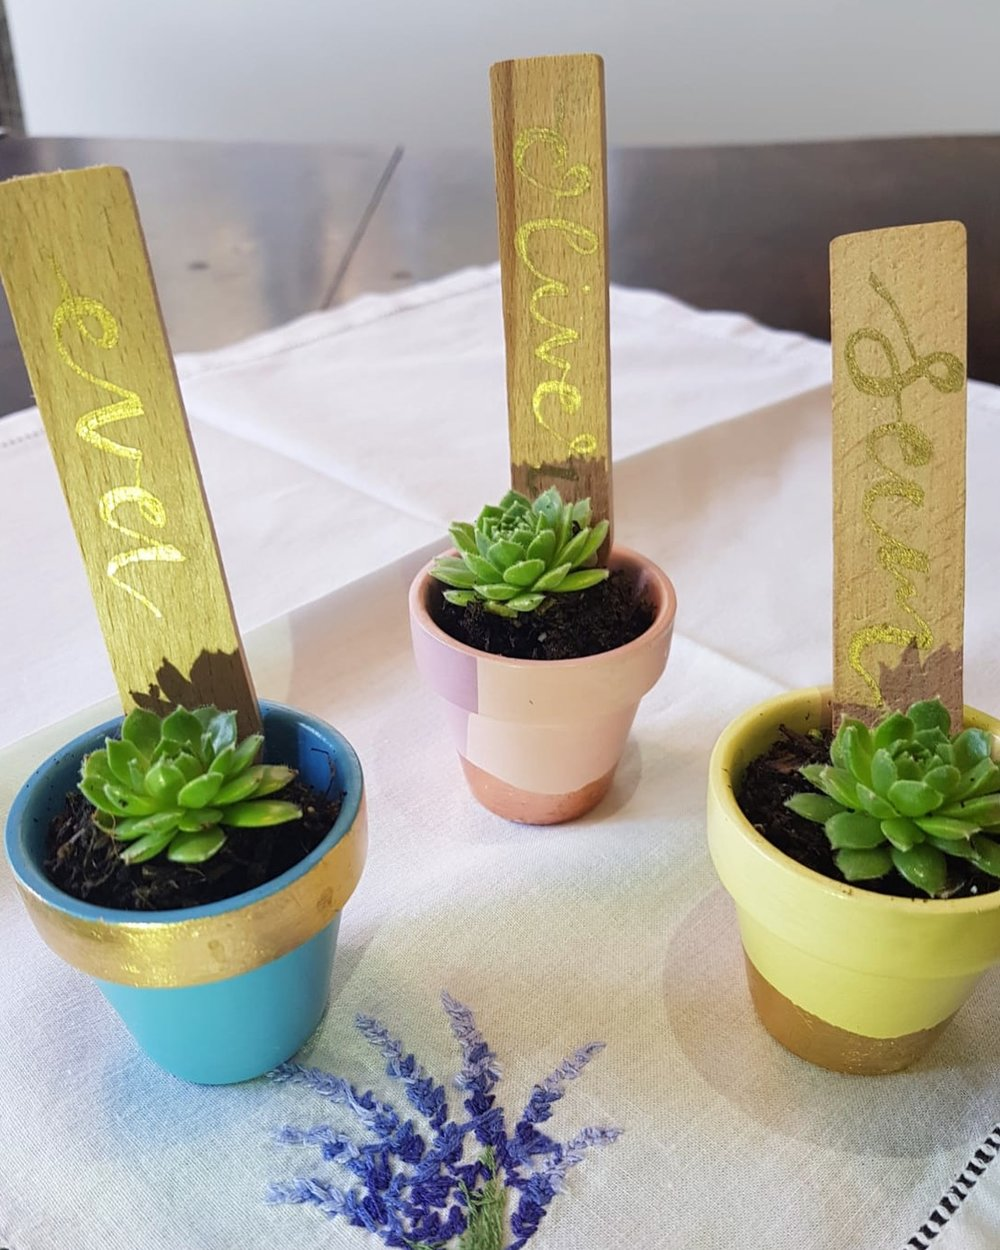 Wedding Favours and Place Names - Mini gilt plant pots with gold hand lettering. I loved making these for a small outdoor wedding.